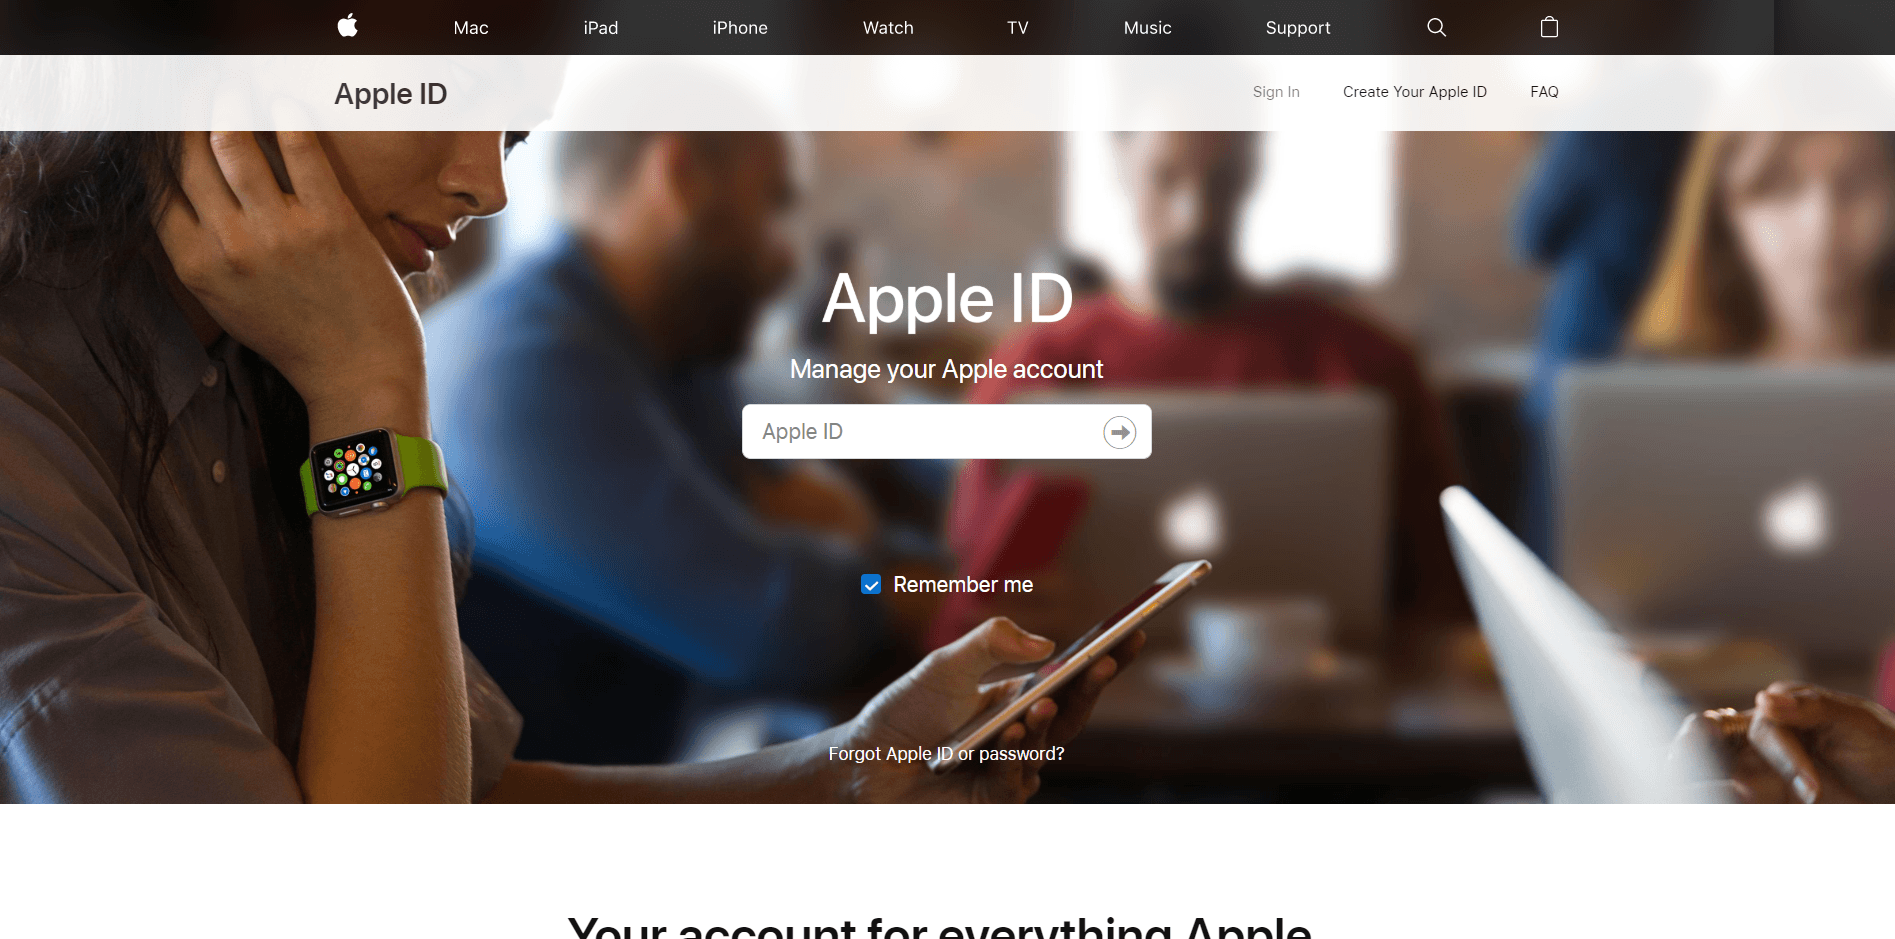 Change Apple ID Saint